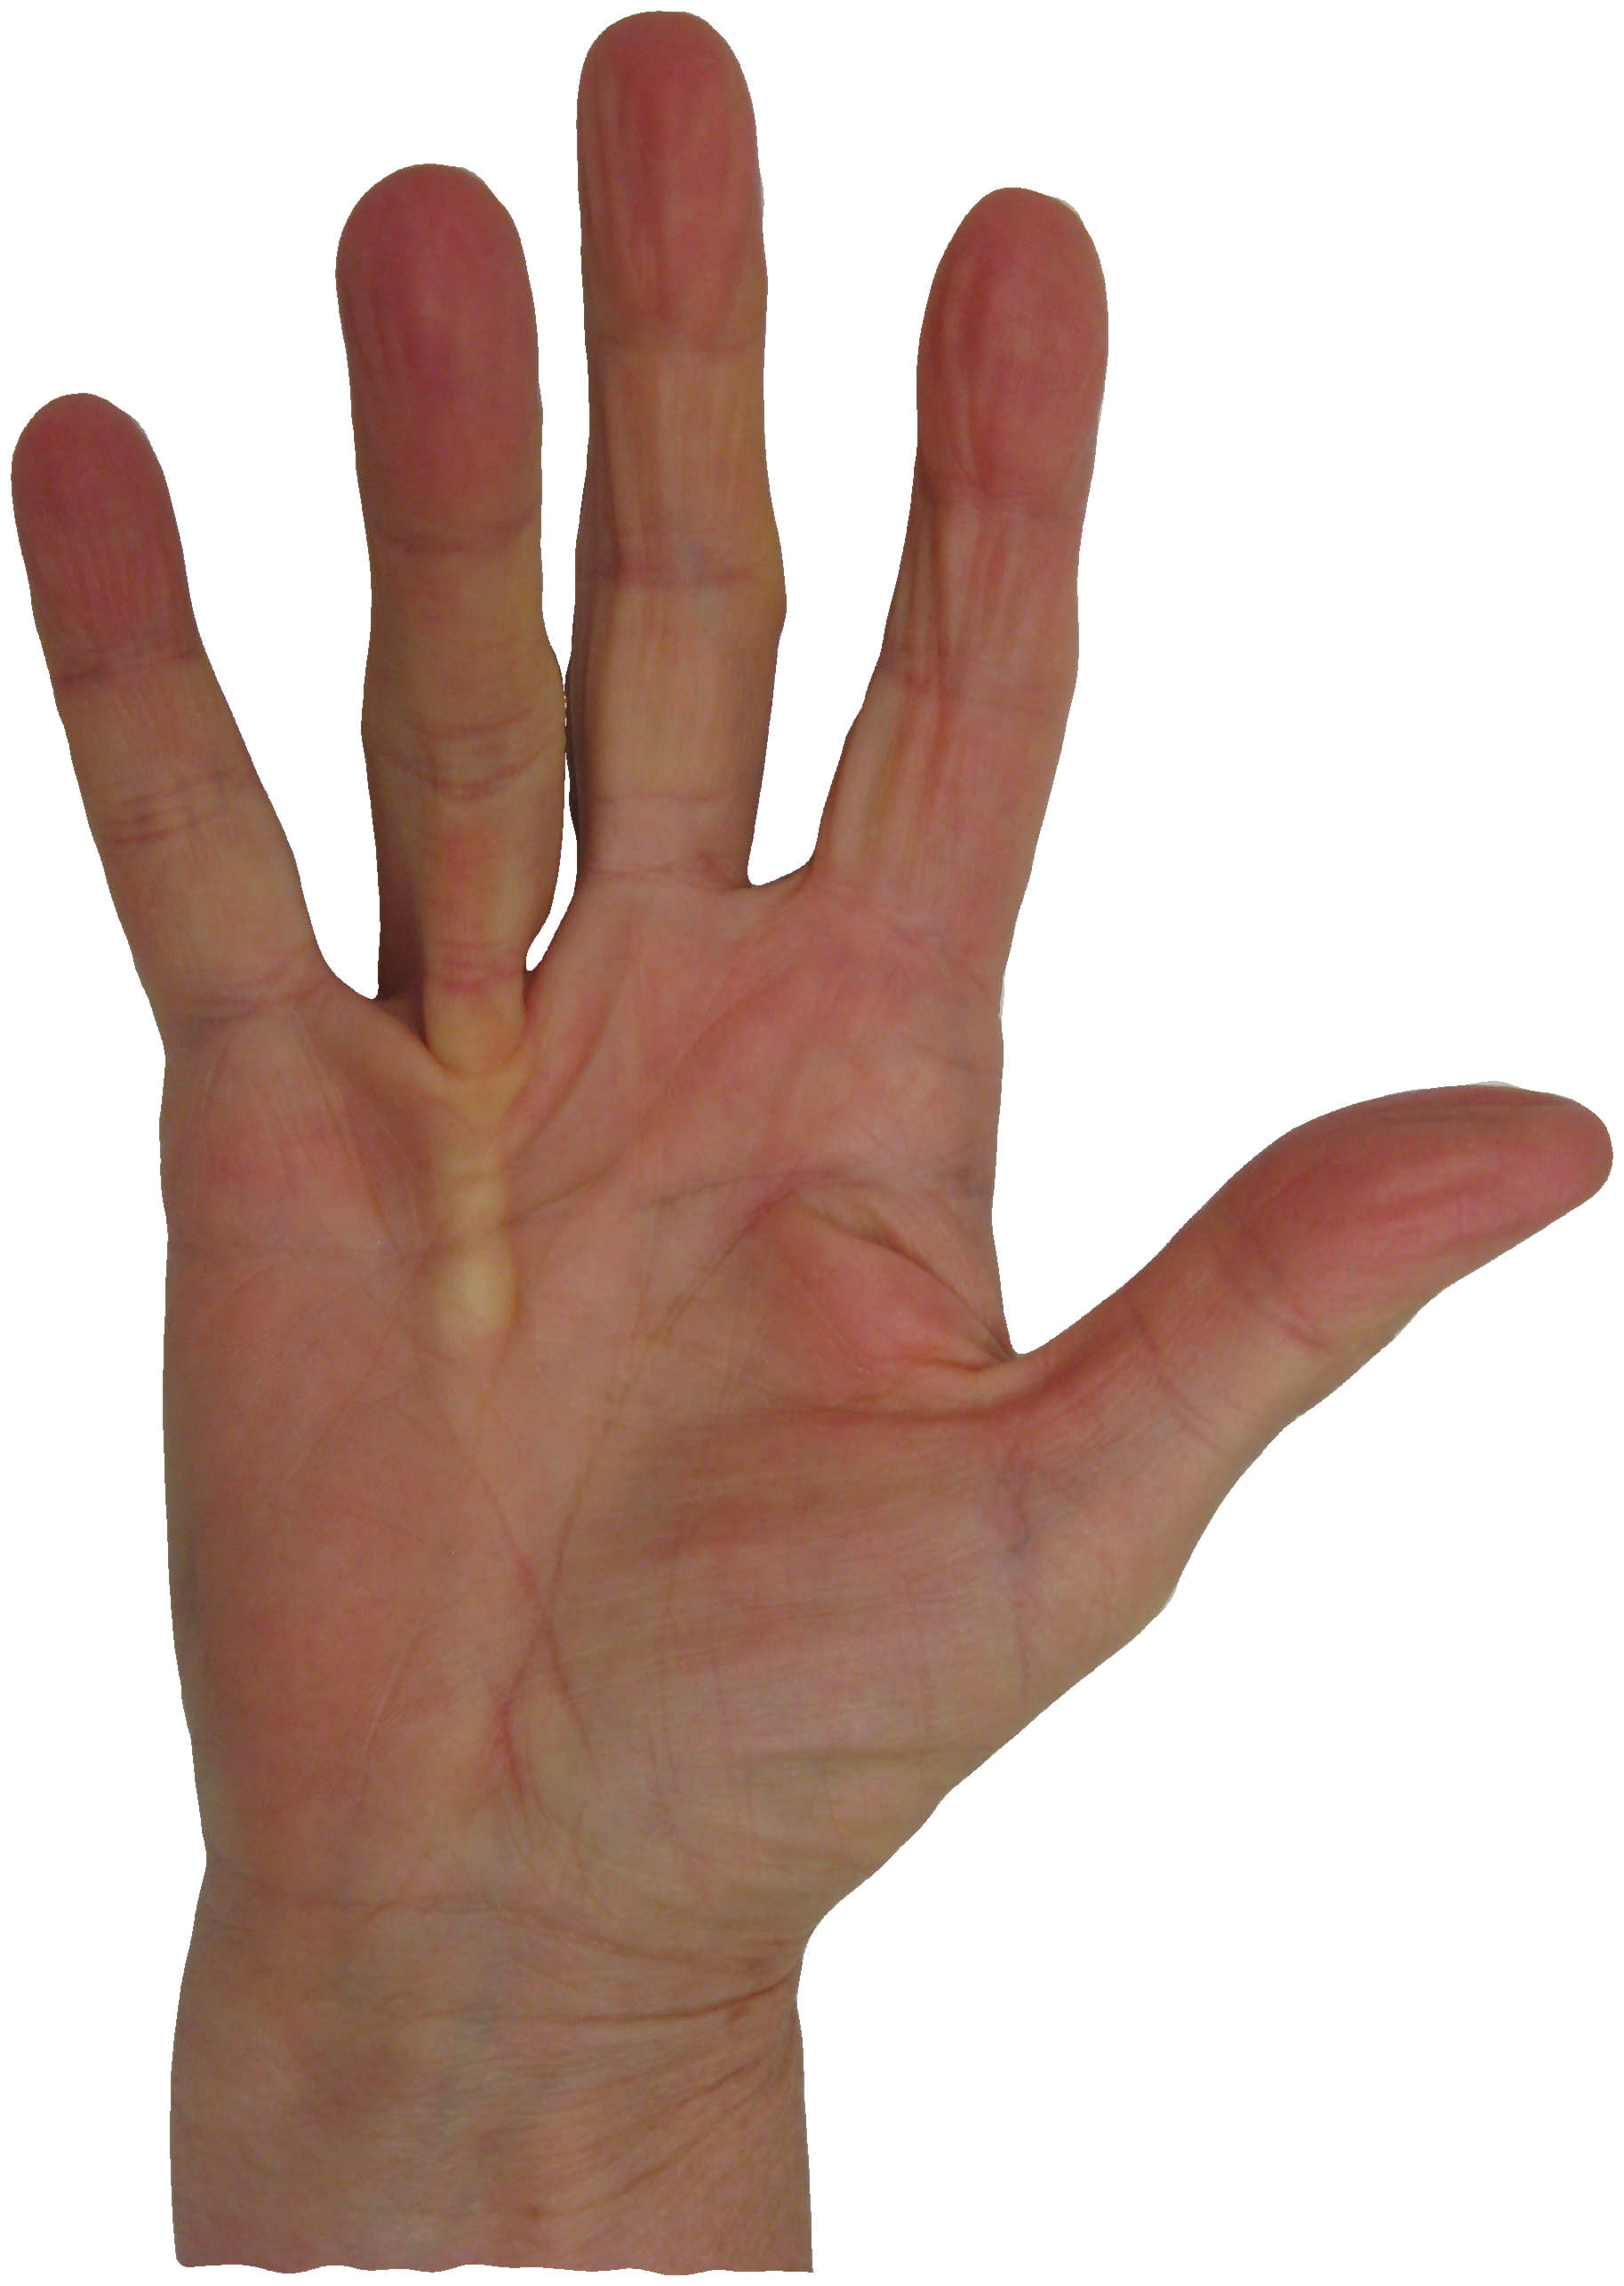 Dupuytren Disease: A hand condition that affects millions, but is still new to many